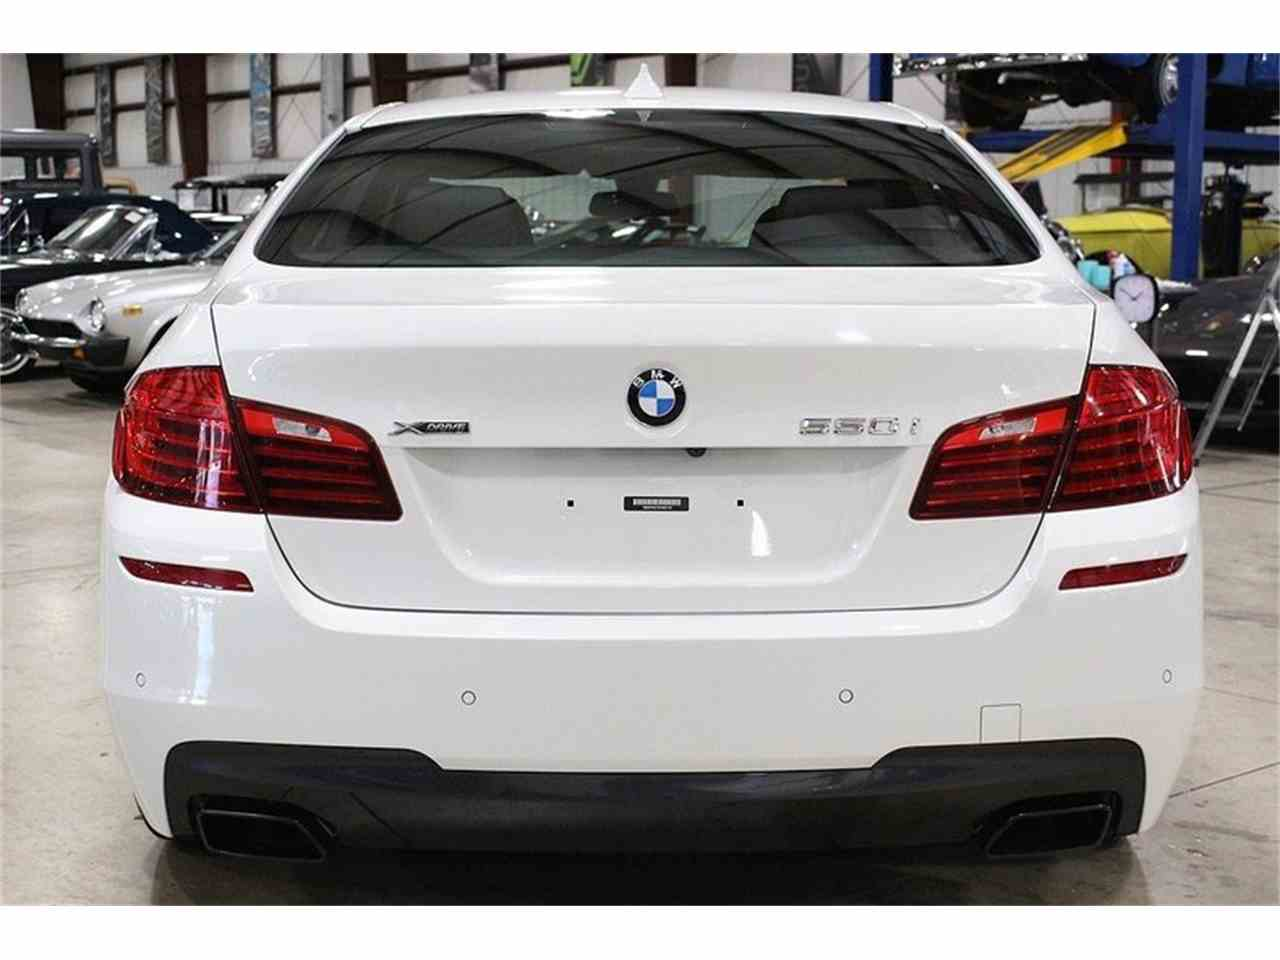 Large Picture of 2014 BMW 5 Series located in Michigan - $34,900.00 Offered by GR Auto Gallery - M41M